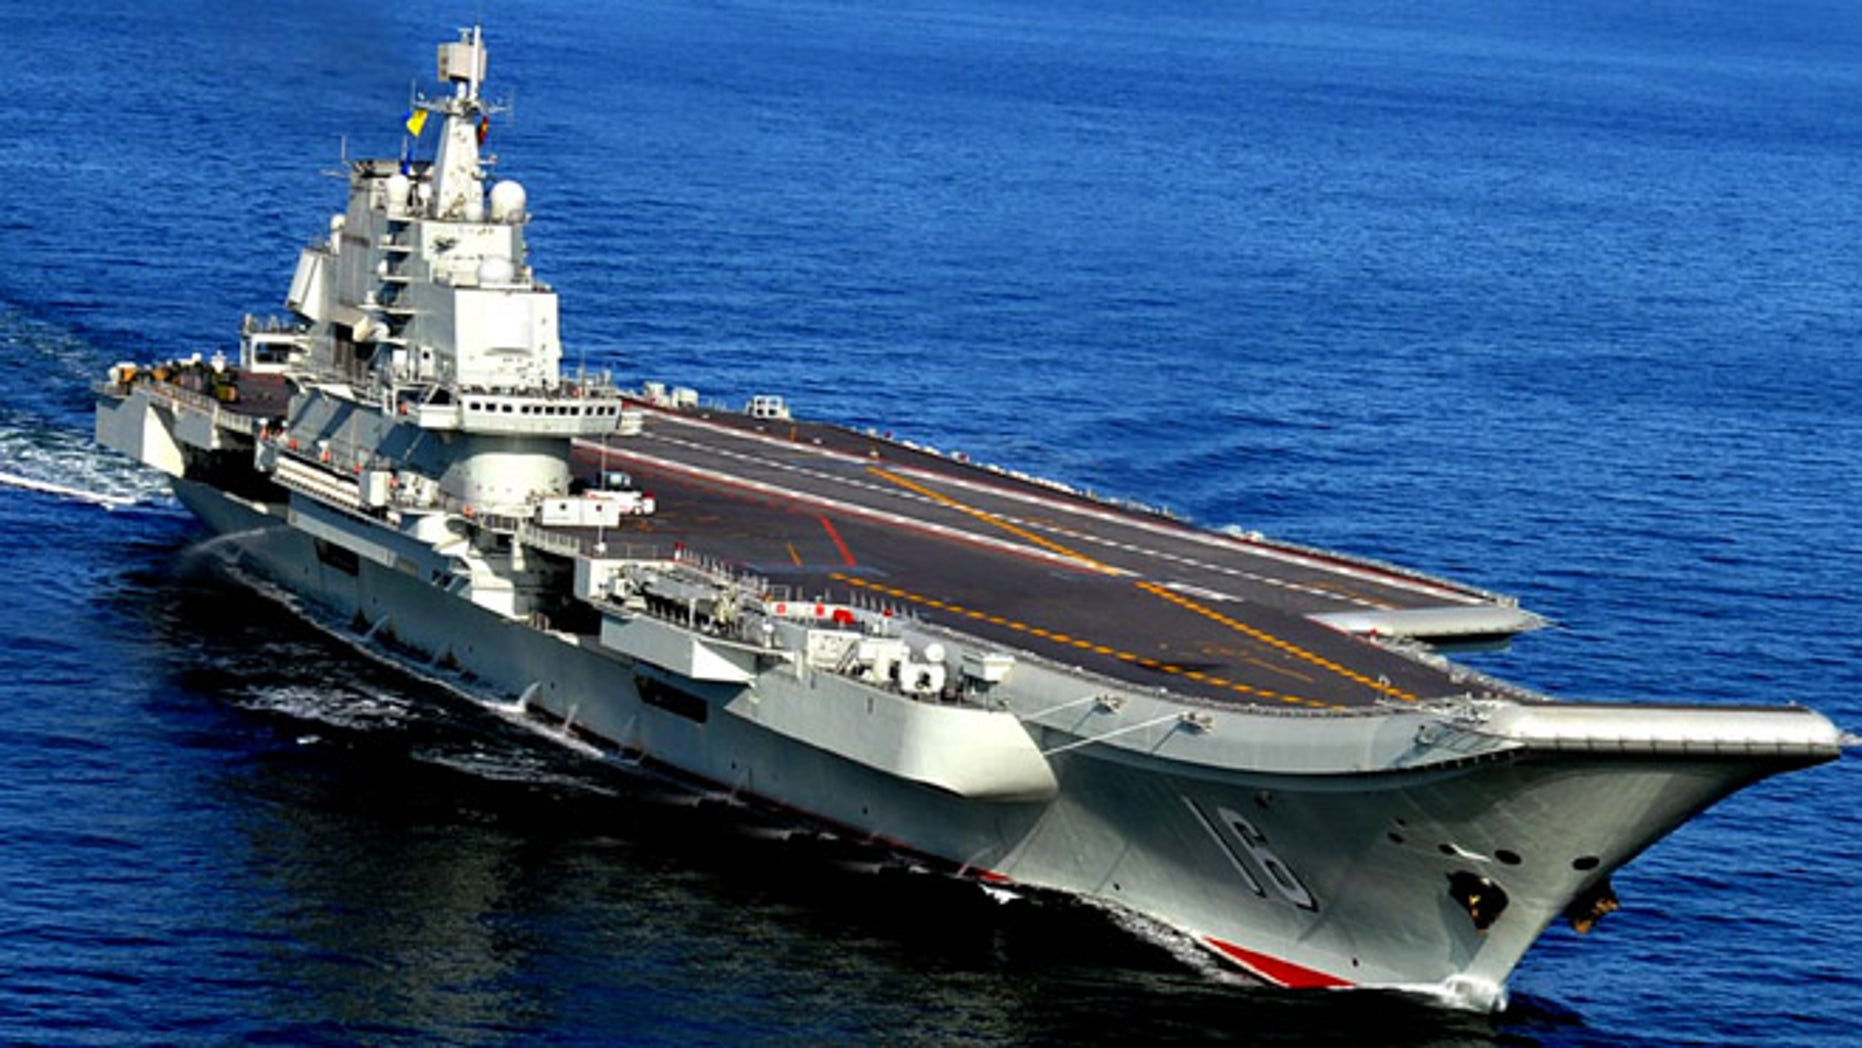 In this Oct. 14, 2012 photo, the Liaoning, China's first aircraft carrier, sails in the sea near Qingdao in eastern China's Shandong province. (AP/Chinatopix)